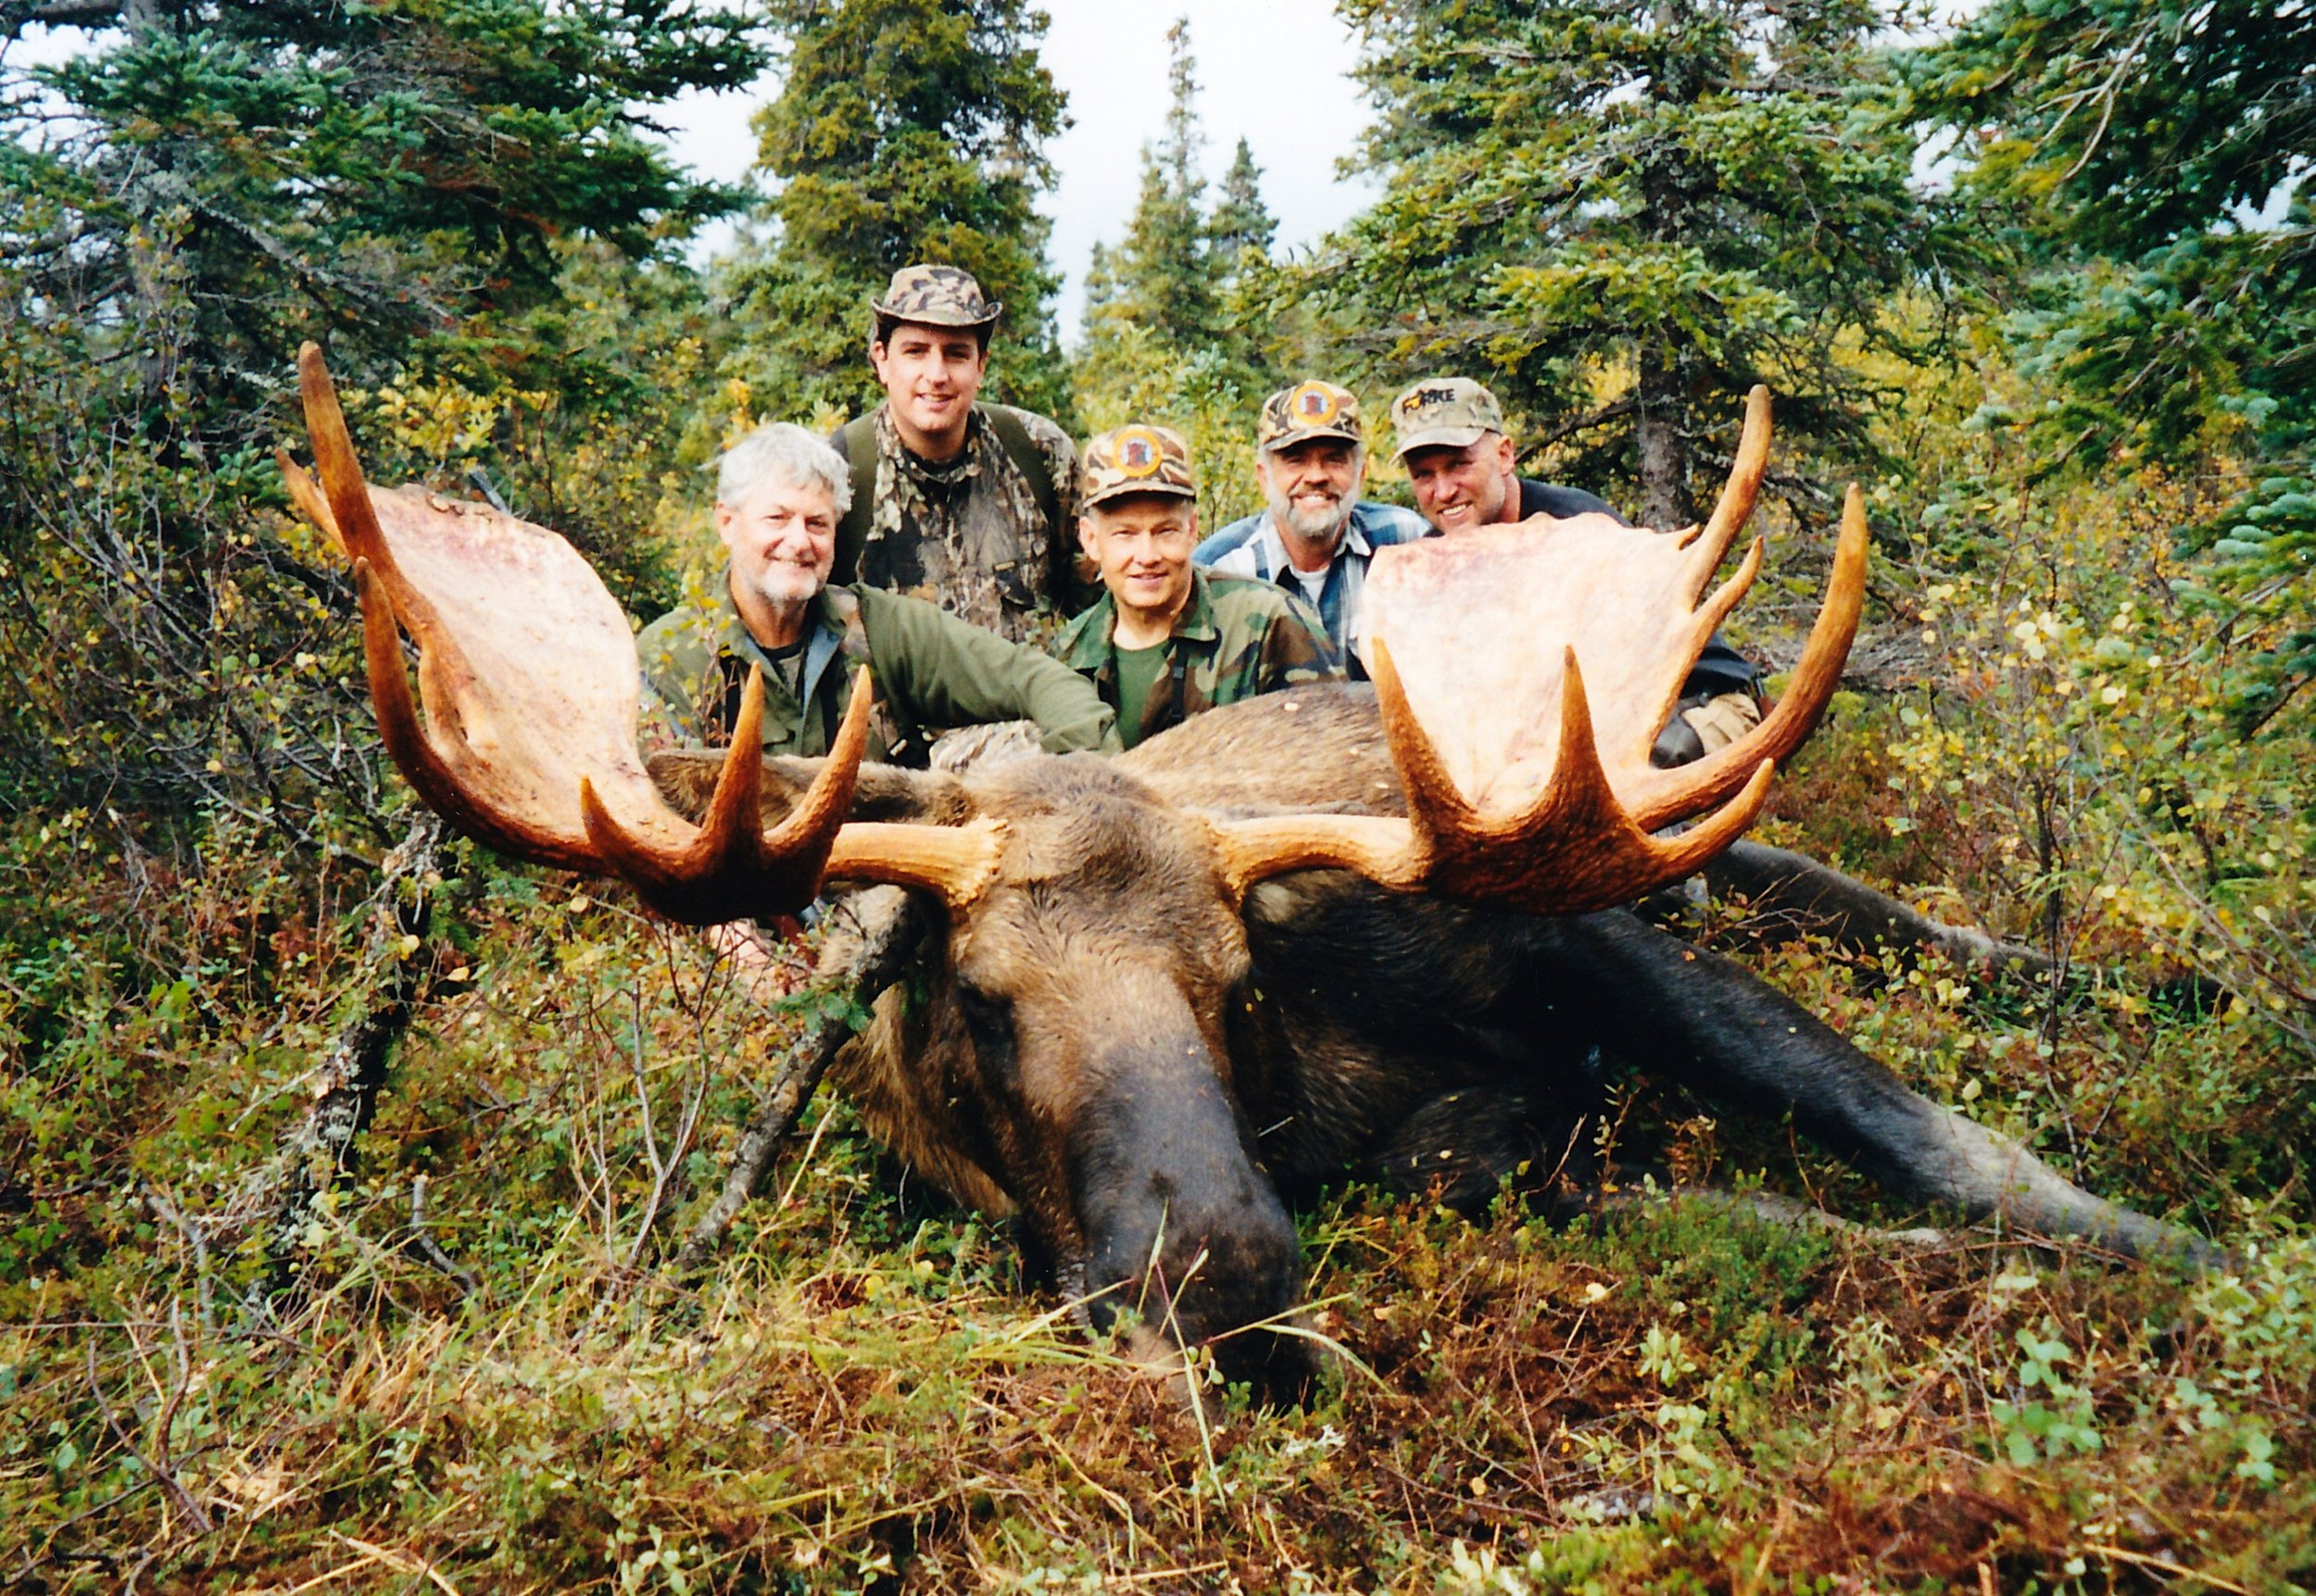 """(L to R) Clients Tom Wells and his son Tom Jr., guide Ron Watts, myself and guide/packer Tom Losk with Tom's 58"""" moose."""